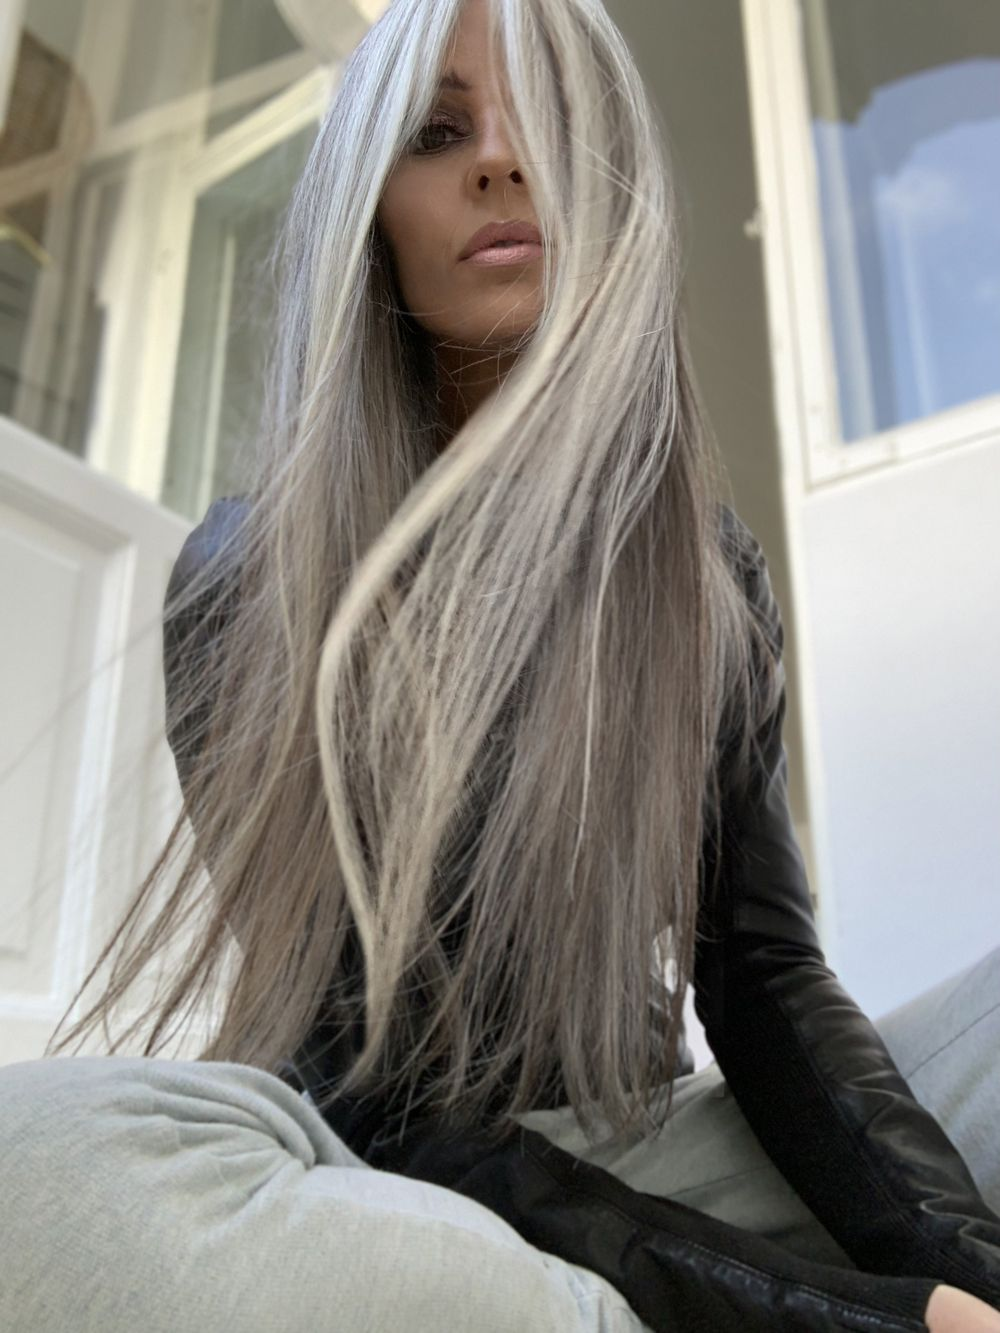 2020 New Gray Hair Wigs For African American Women Fake Wigs Hair Turning Grey Grey Hair At 22 Flat Top Wig Witch Wig